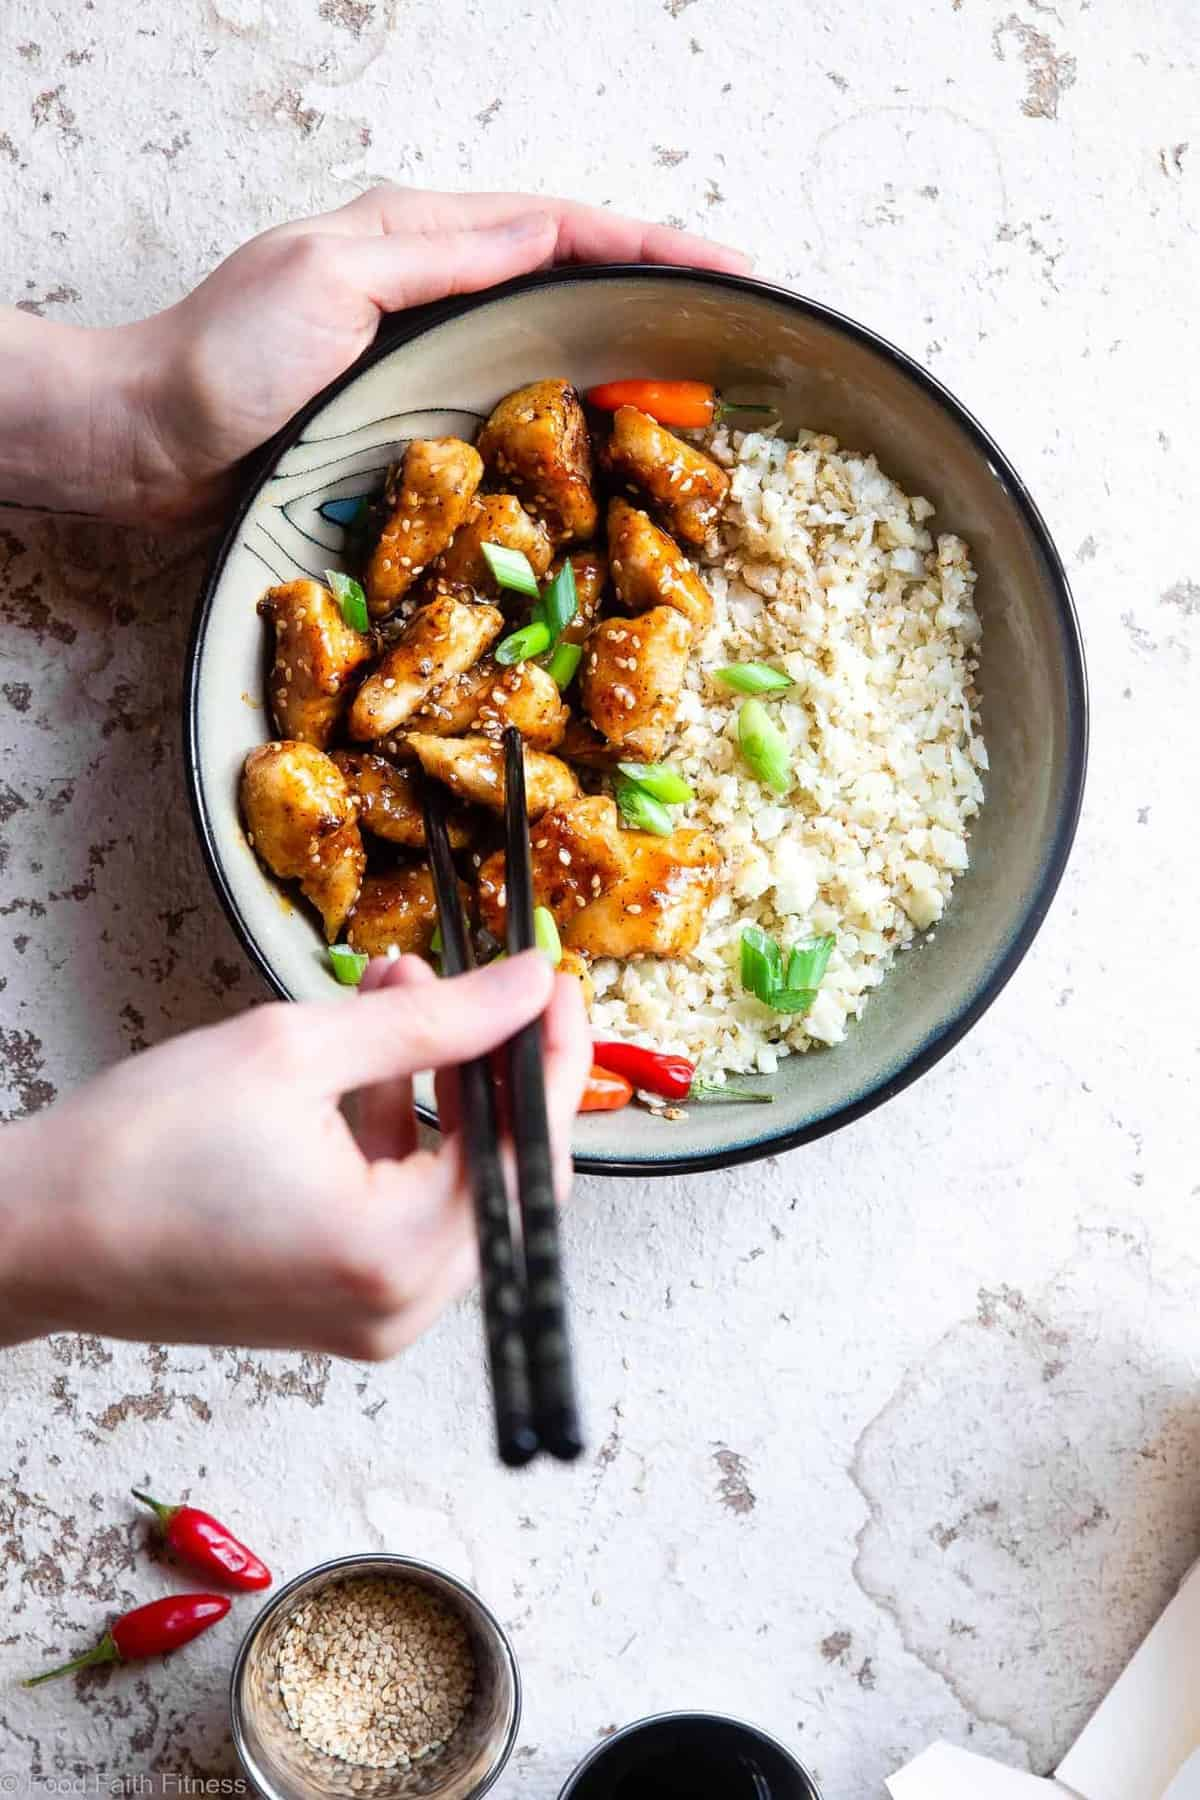 Paleo Easy Gluten Free Healthy Sesame Chicken - This paleo friendly, and sugar/grain/dairy and gluten free CRISPY Sesame Seed Chicken recipe tastes just like takeout but is SO much better for you! A quick dinner that the whole family will love! | #Foodfaithfitness | #Glutenfree #Paleo #Whole30 #Sugarfree #Healthy